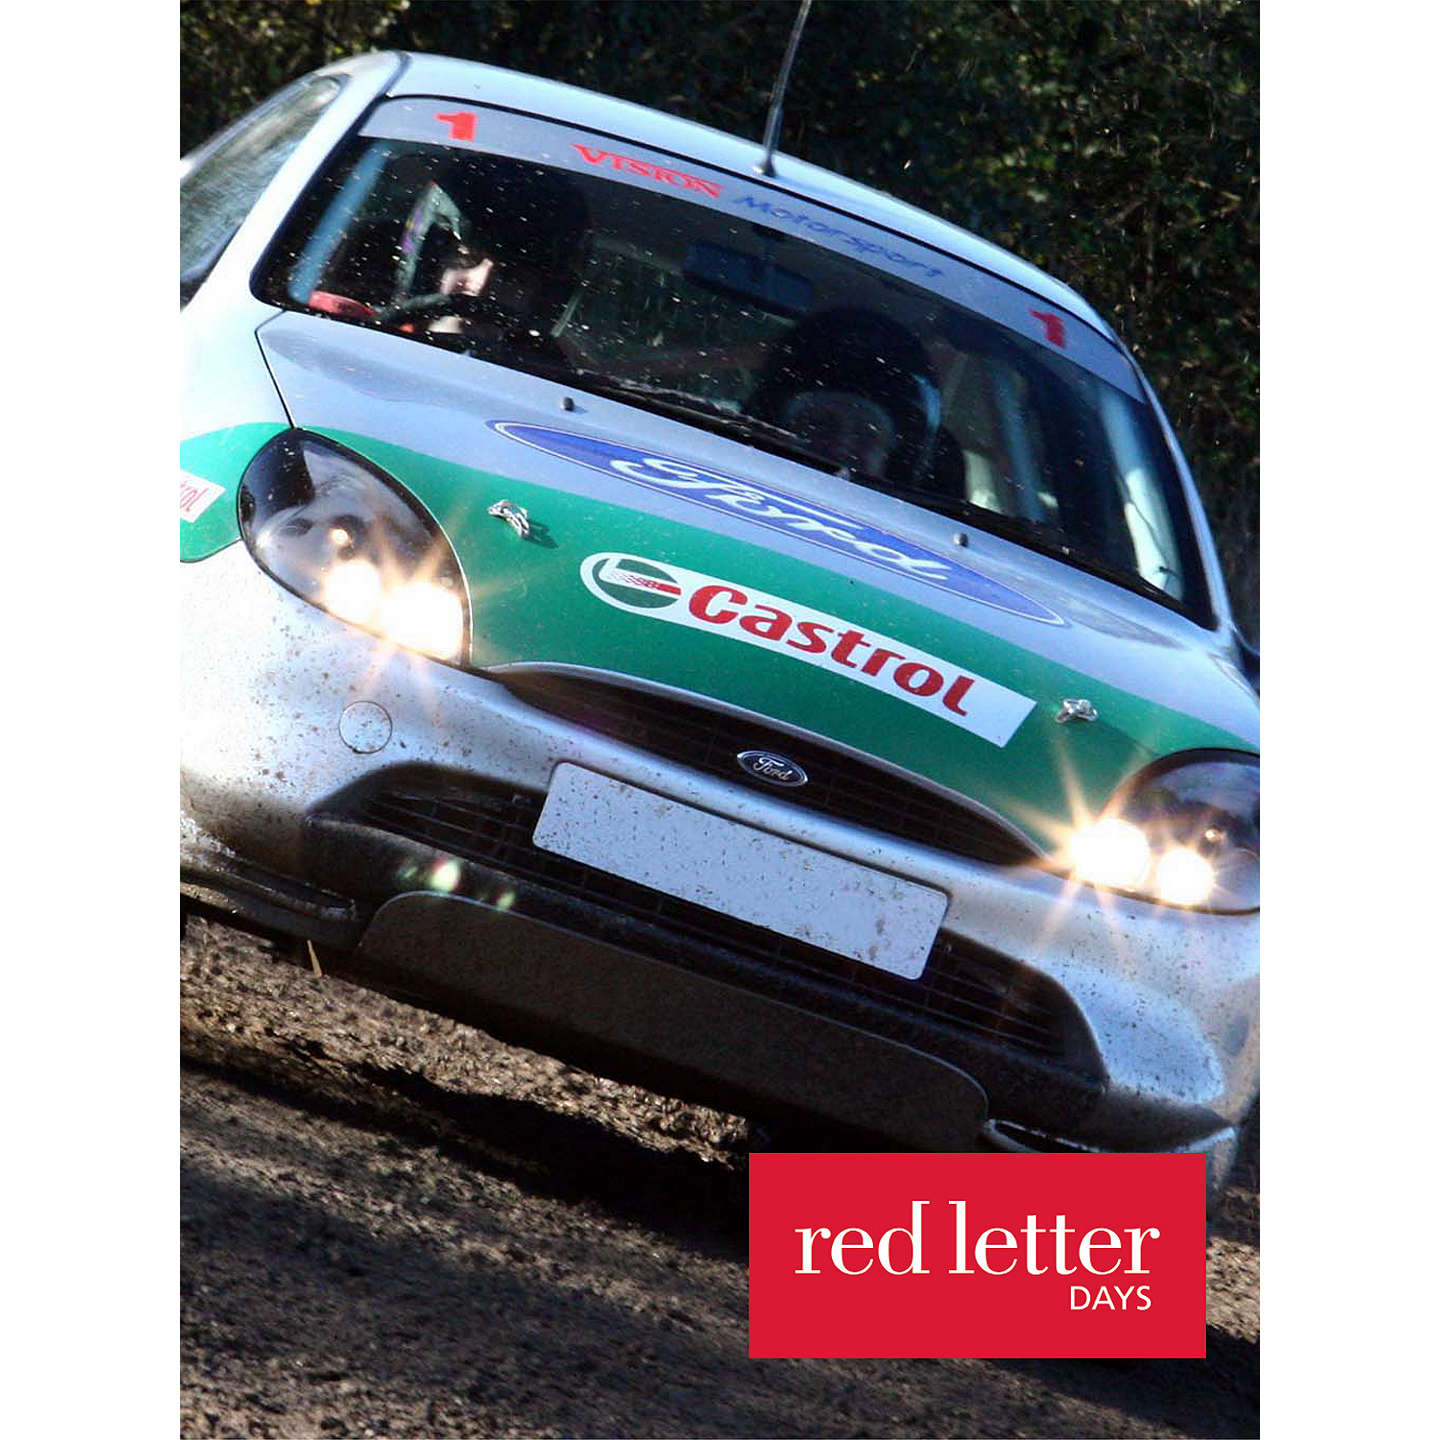 Red Letter Days Rally Driving Thrill at John Lewis